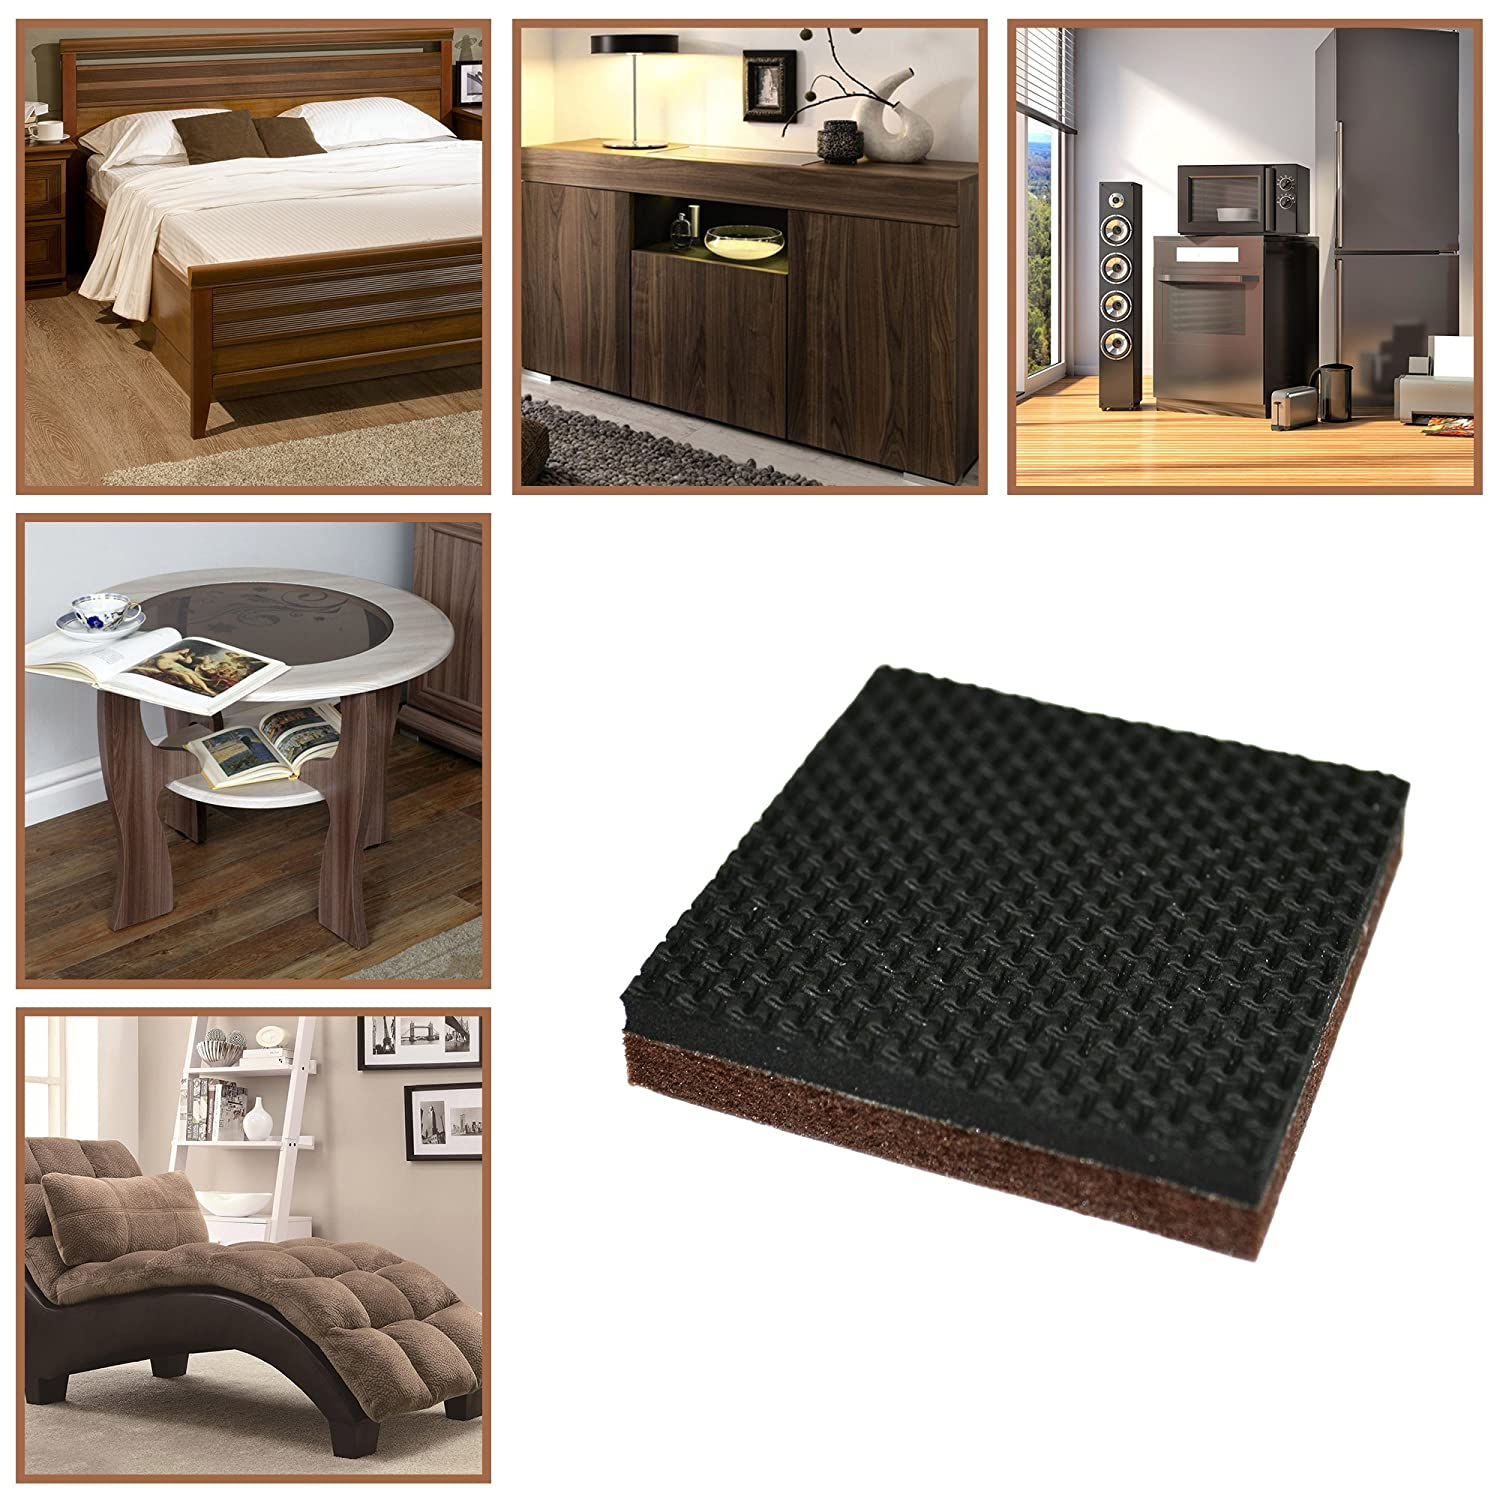 """Furniture Floor Protectors for Keep in Place Furniture /& Furniture Stoppers Clever /& Easy Rubber Feet Non Slip Furniture Pads X-PROTECTOR Best Furniture Grippers Premium 24 pcs 1 1//2/"""" Furniture Pad"""